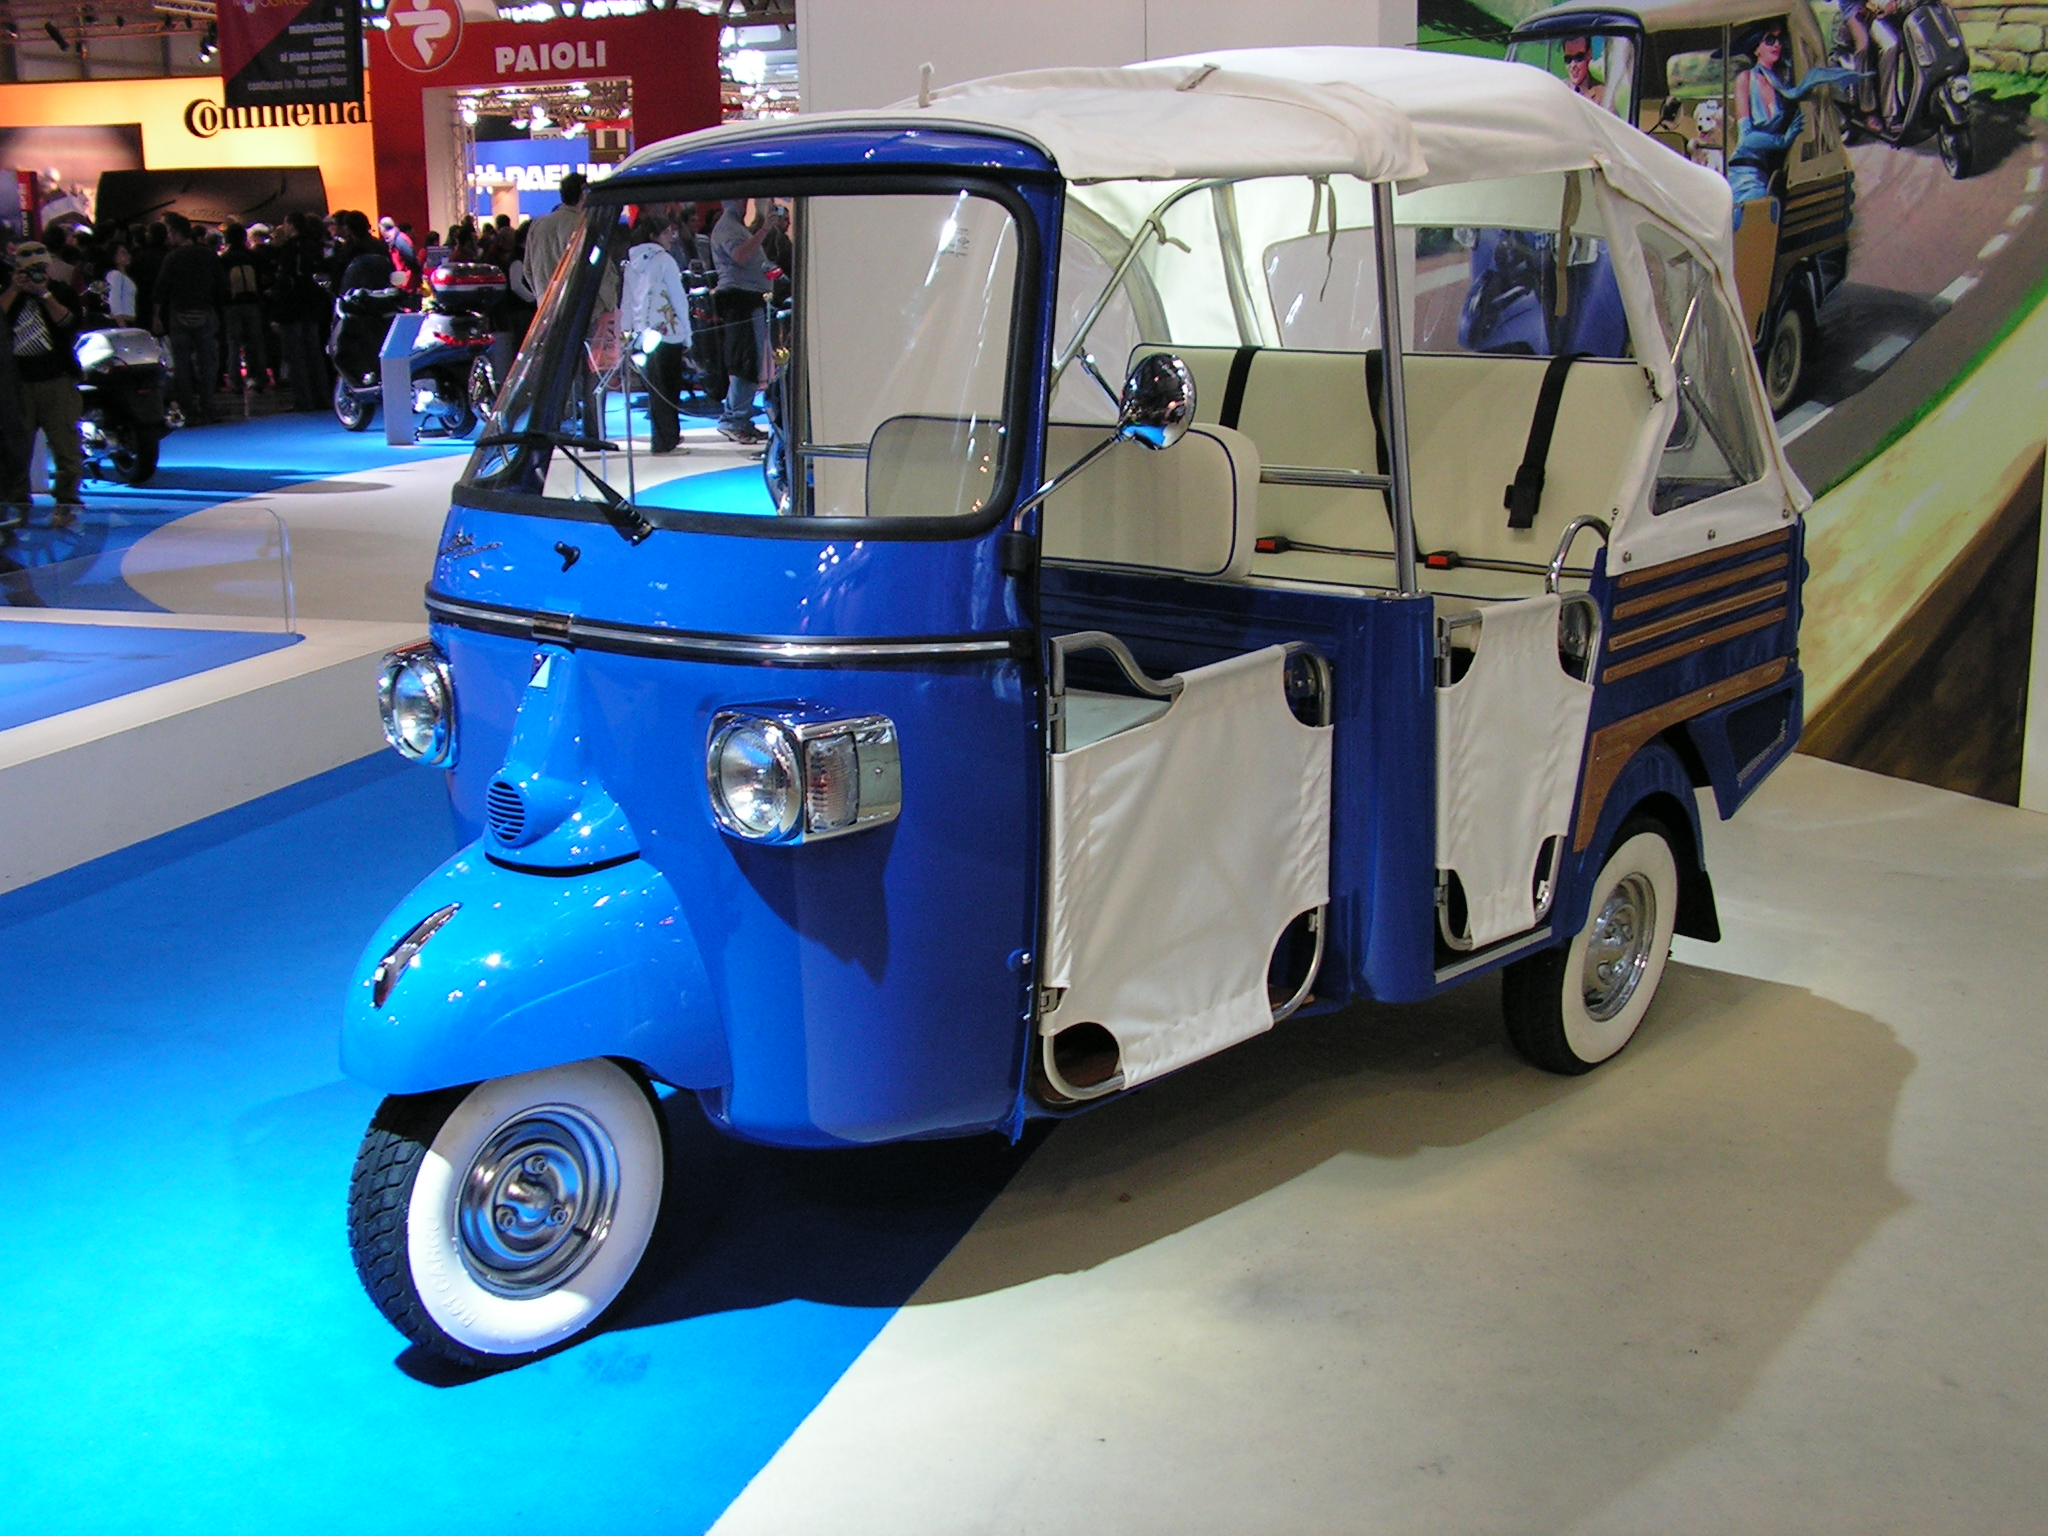 insomniac garage piaggio ape the tiny truck that put the world 39 s working men on wheels. Black Bedroom Furniture Sets. Home Design Ideas